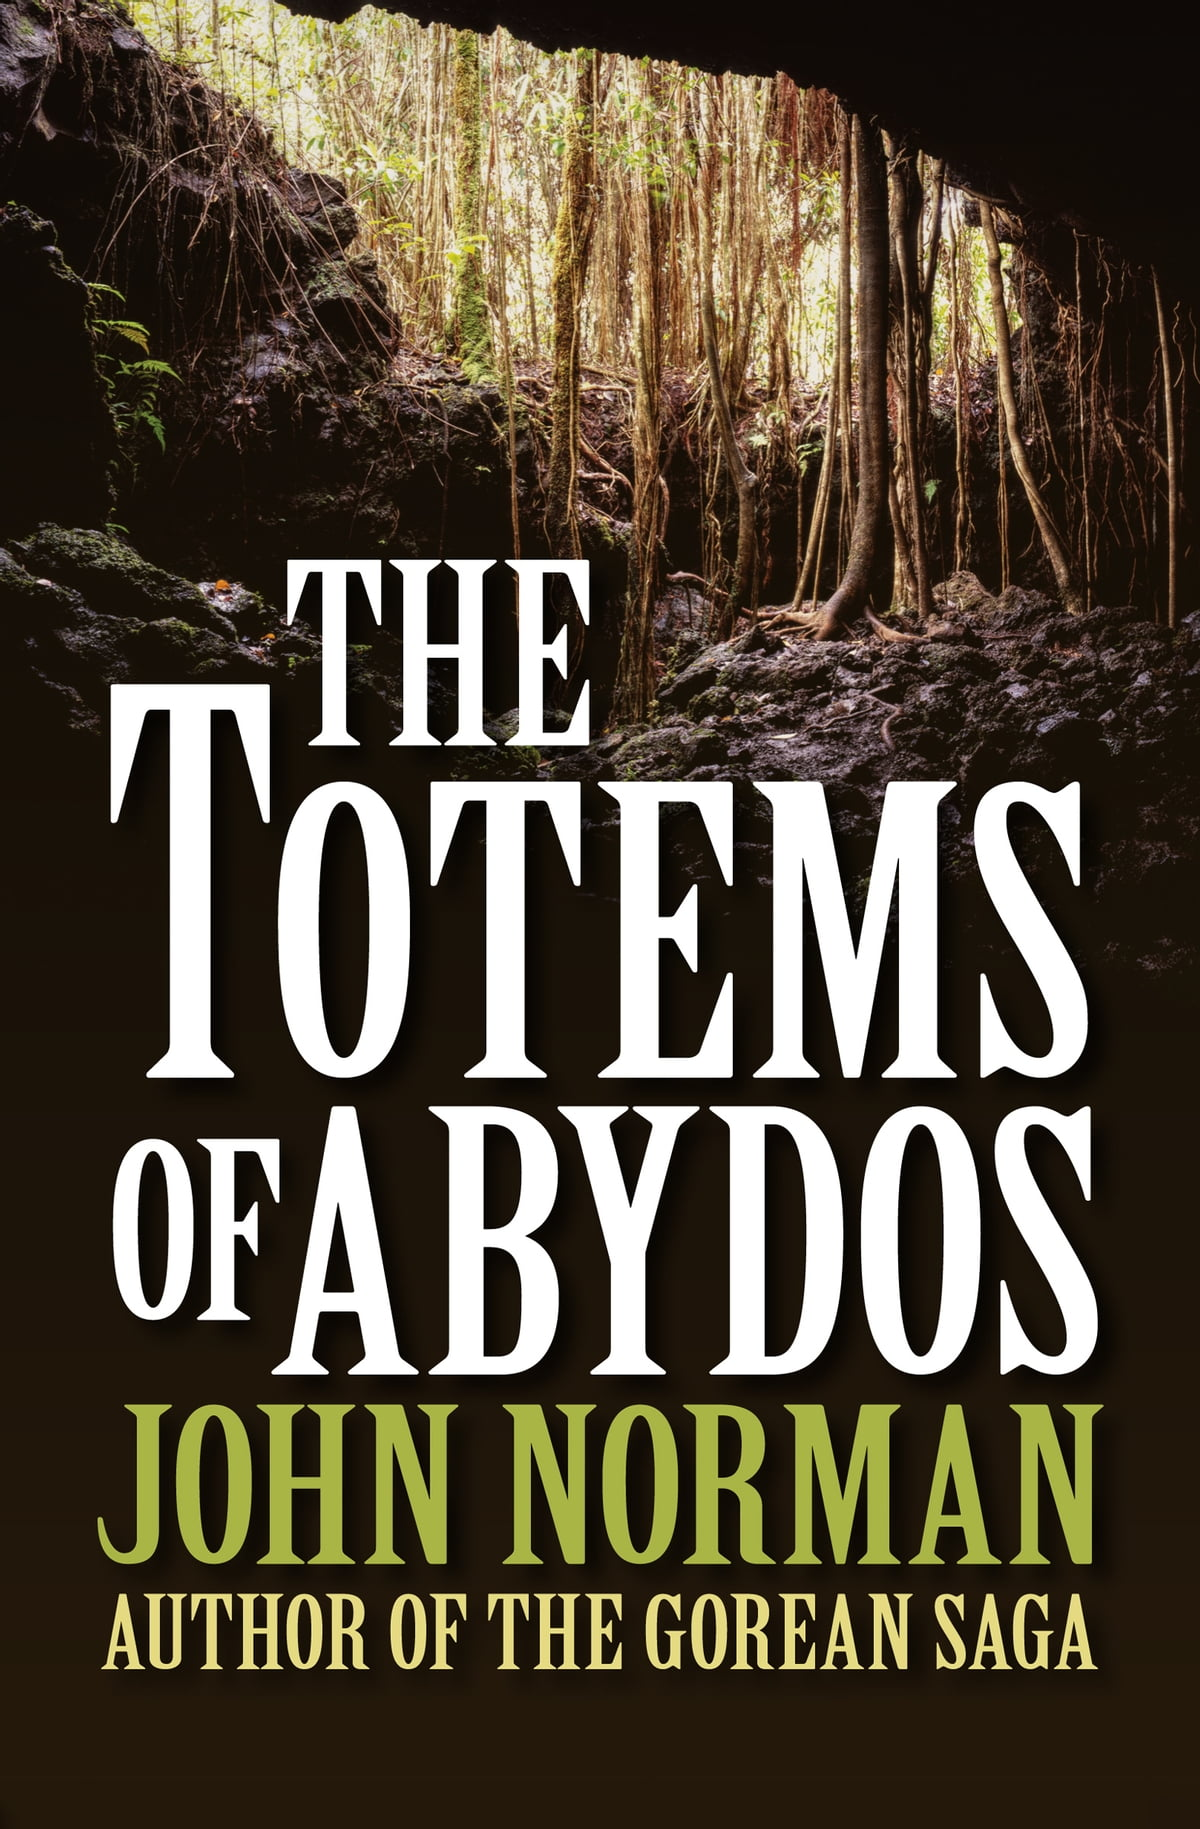 The totems of abydos ebook by john norman 9781480499485 the totems of abydos ebook by john norman 9781480499485 rakuten kobo fandeluxe Epub